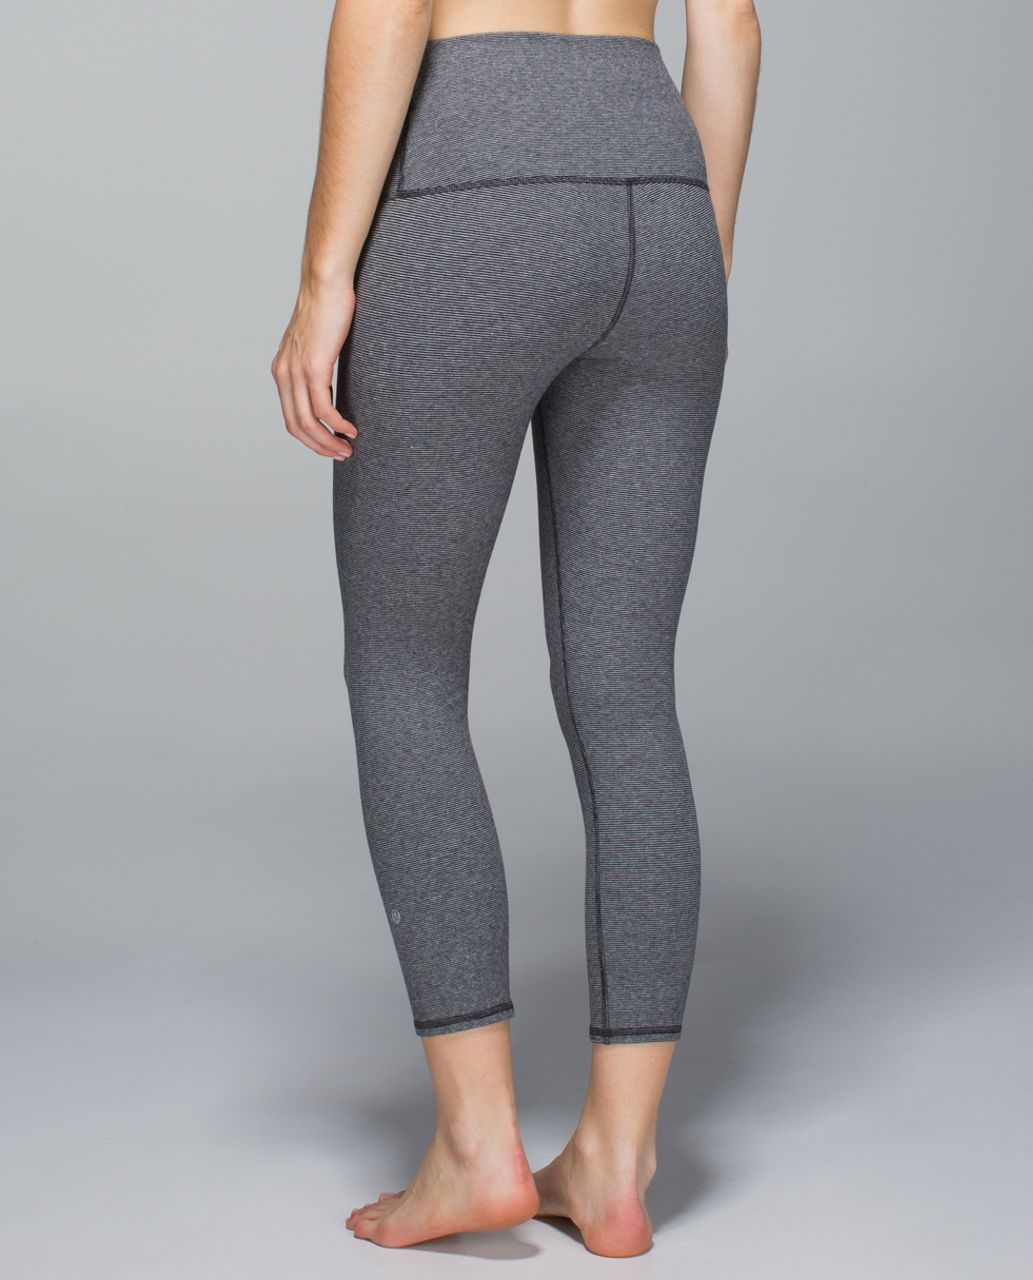 Lululemon Wunder Under Crop *Cotton (Roll Down) - Wee Stripe Heathered Medium Grey Black